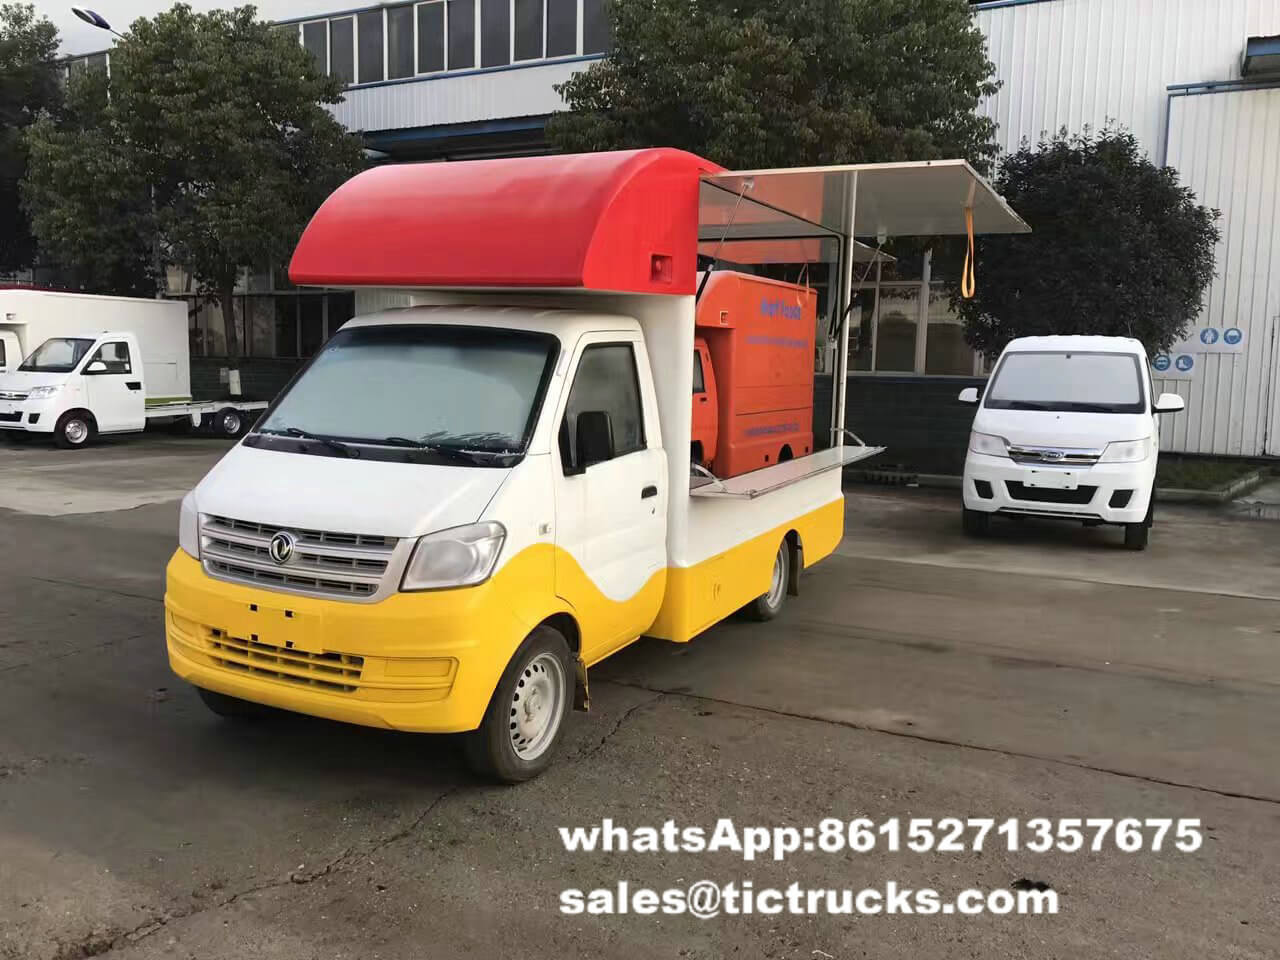 DONGFENG food vending van truck mobile